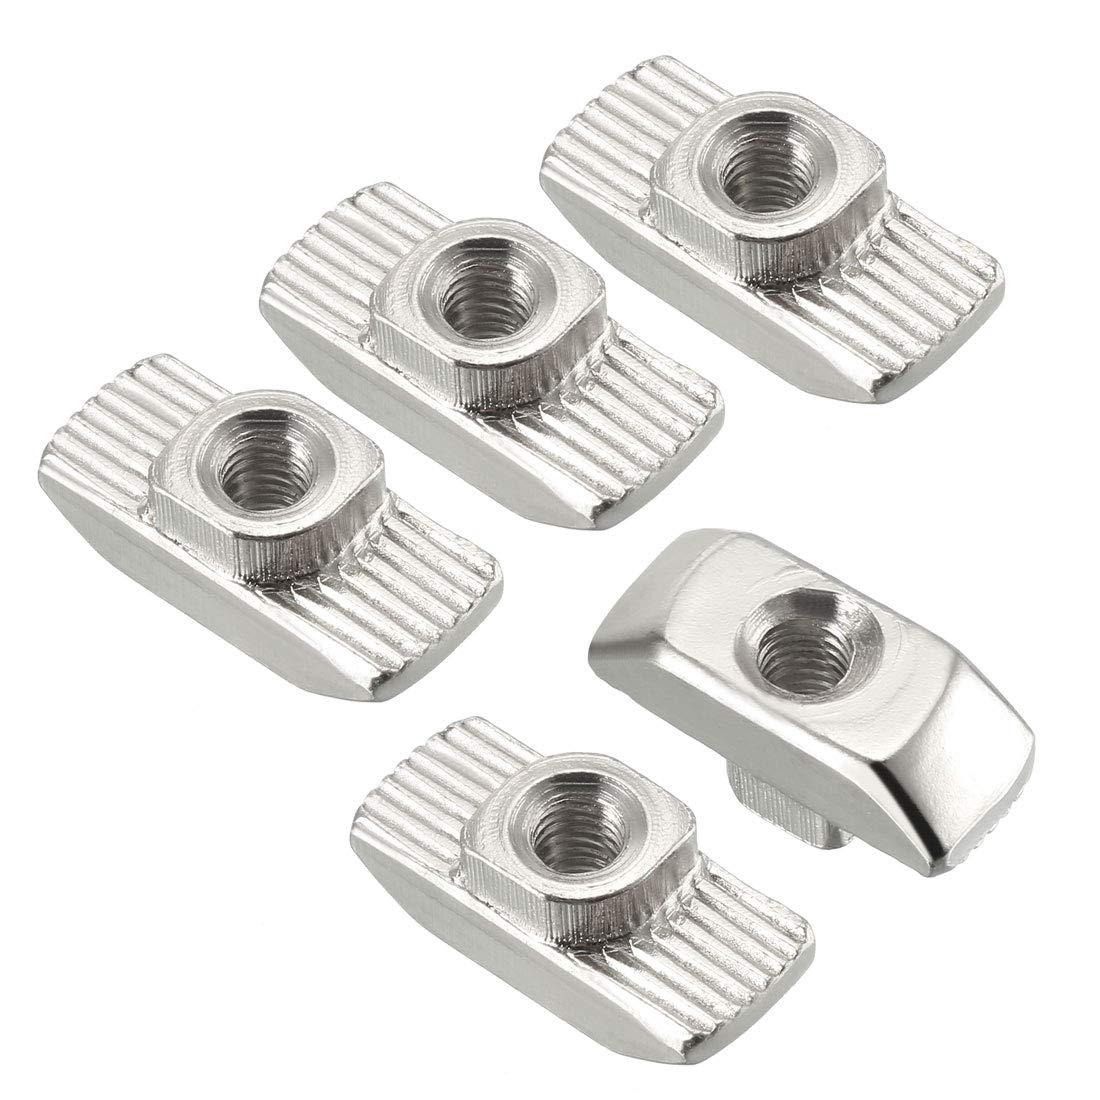 Carbon Steel Nickel-Plated sourcing map Sliding T Slot Nuts M3 Half Round Roll in T-Nut for 2020 Series Aluminum Extrusion Profile Pack of 10